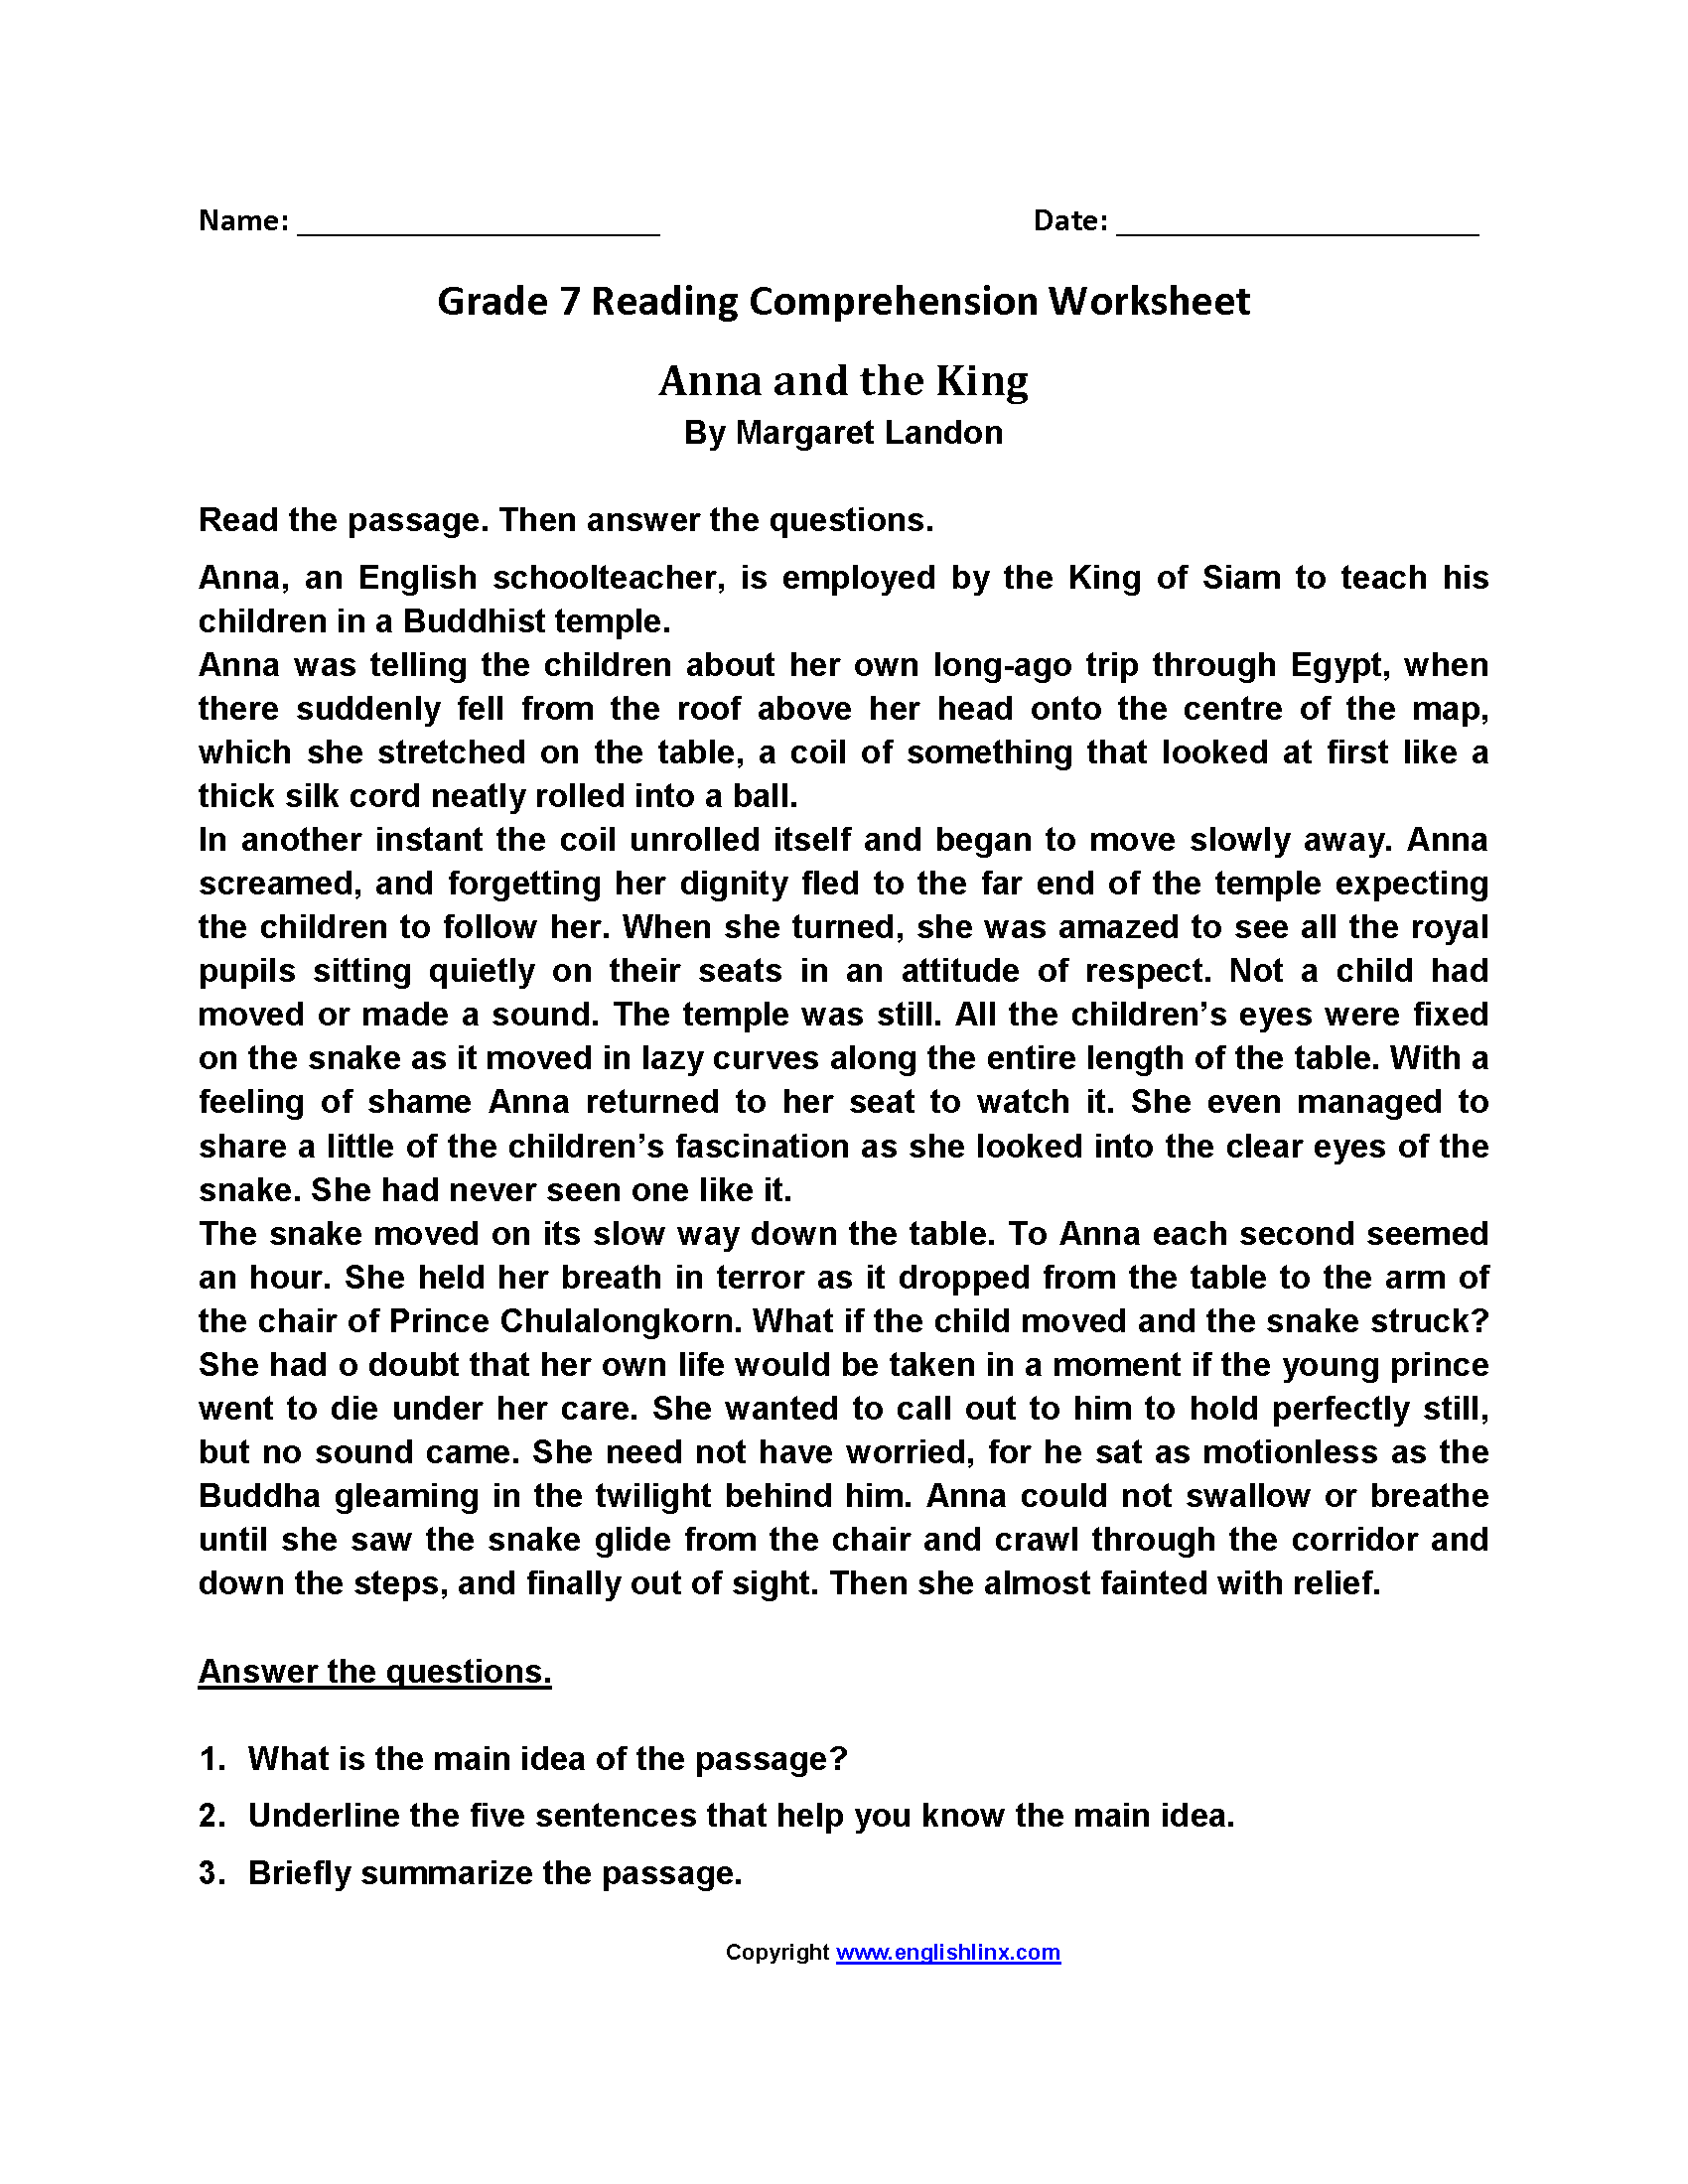 Reading Comprehension Worksheets Grade 7